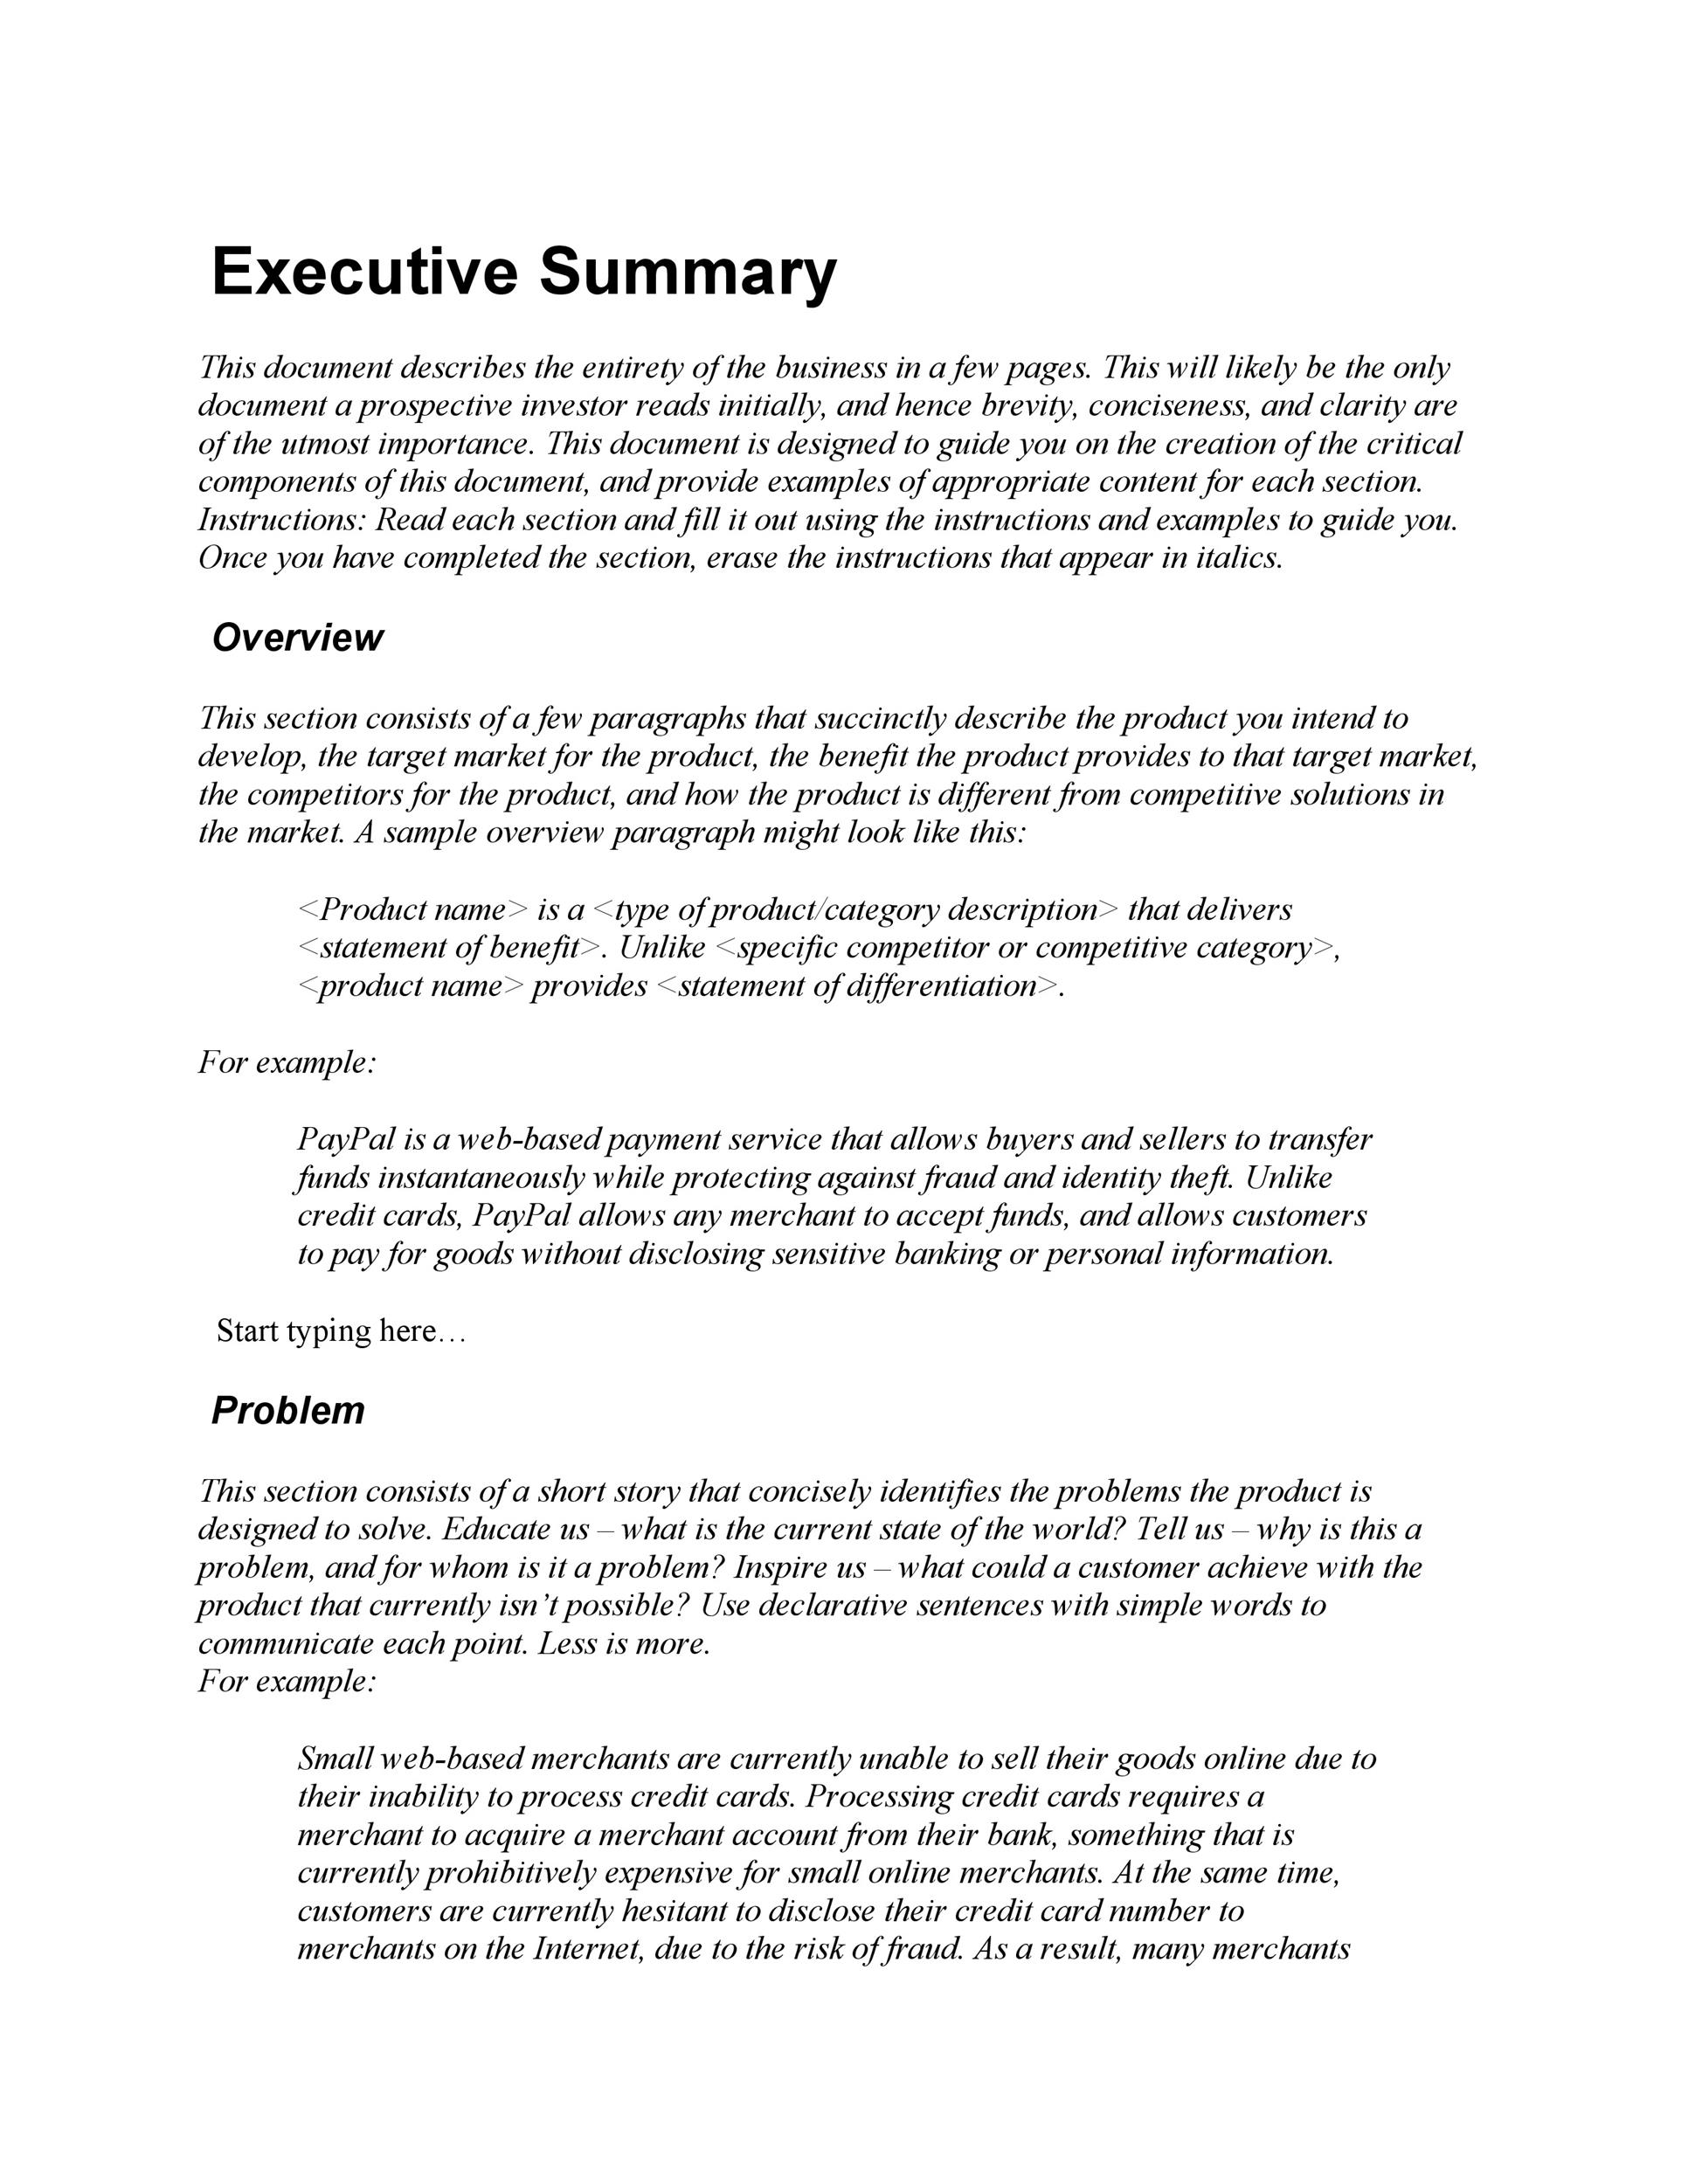 Elegant Printable Executive Summary Template 09 For An Executive Summary